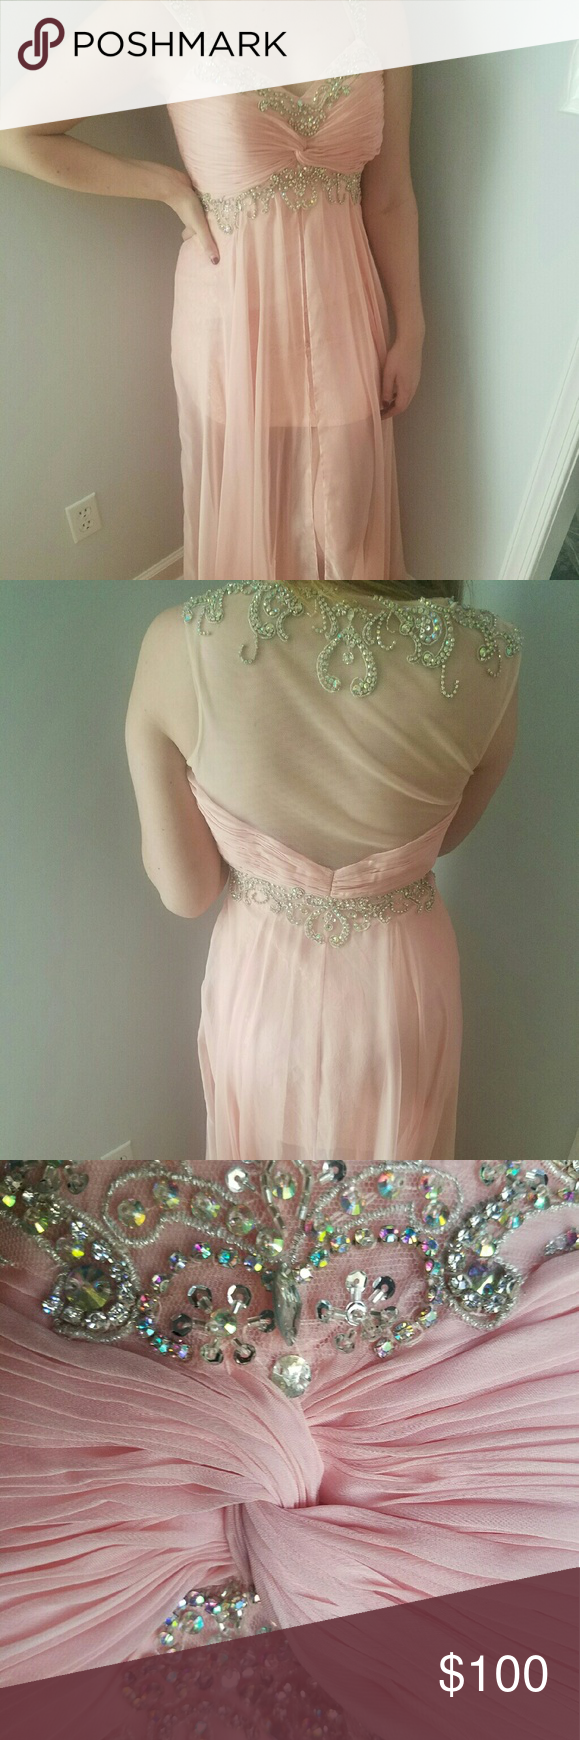 Prom dress light pink layered prom dress opening in front to show